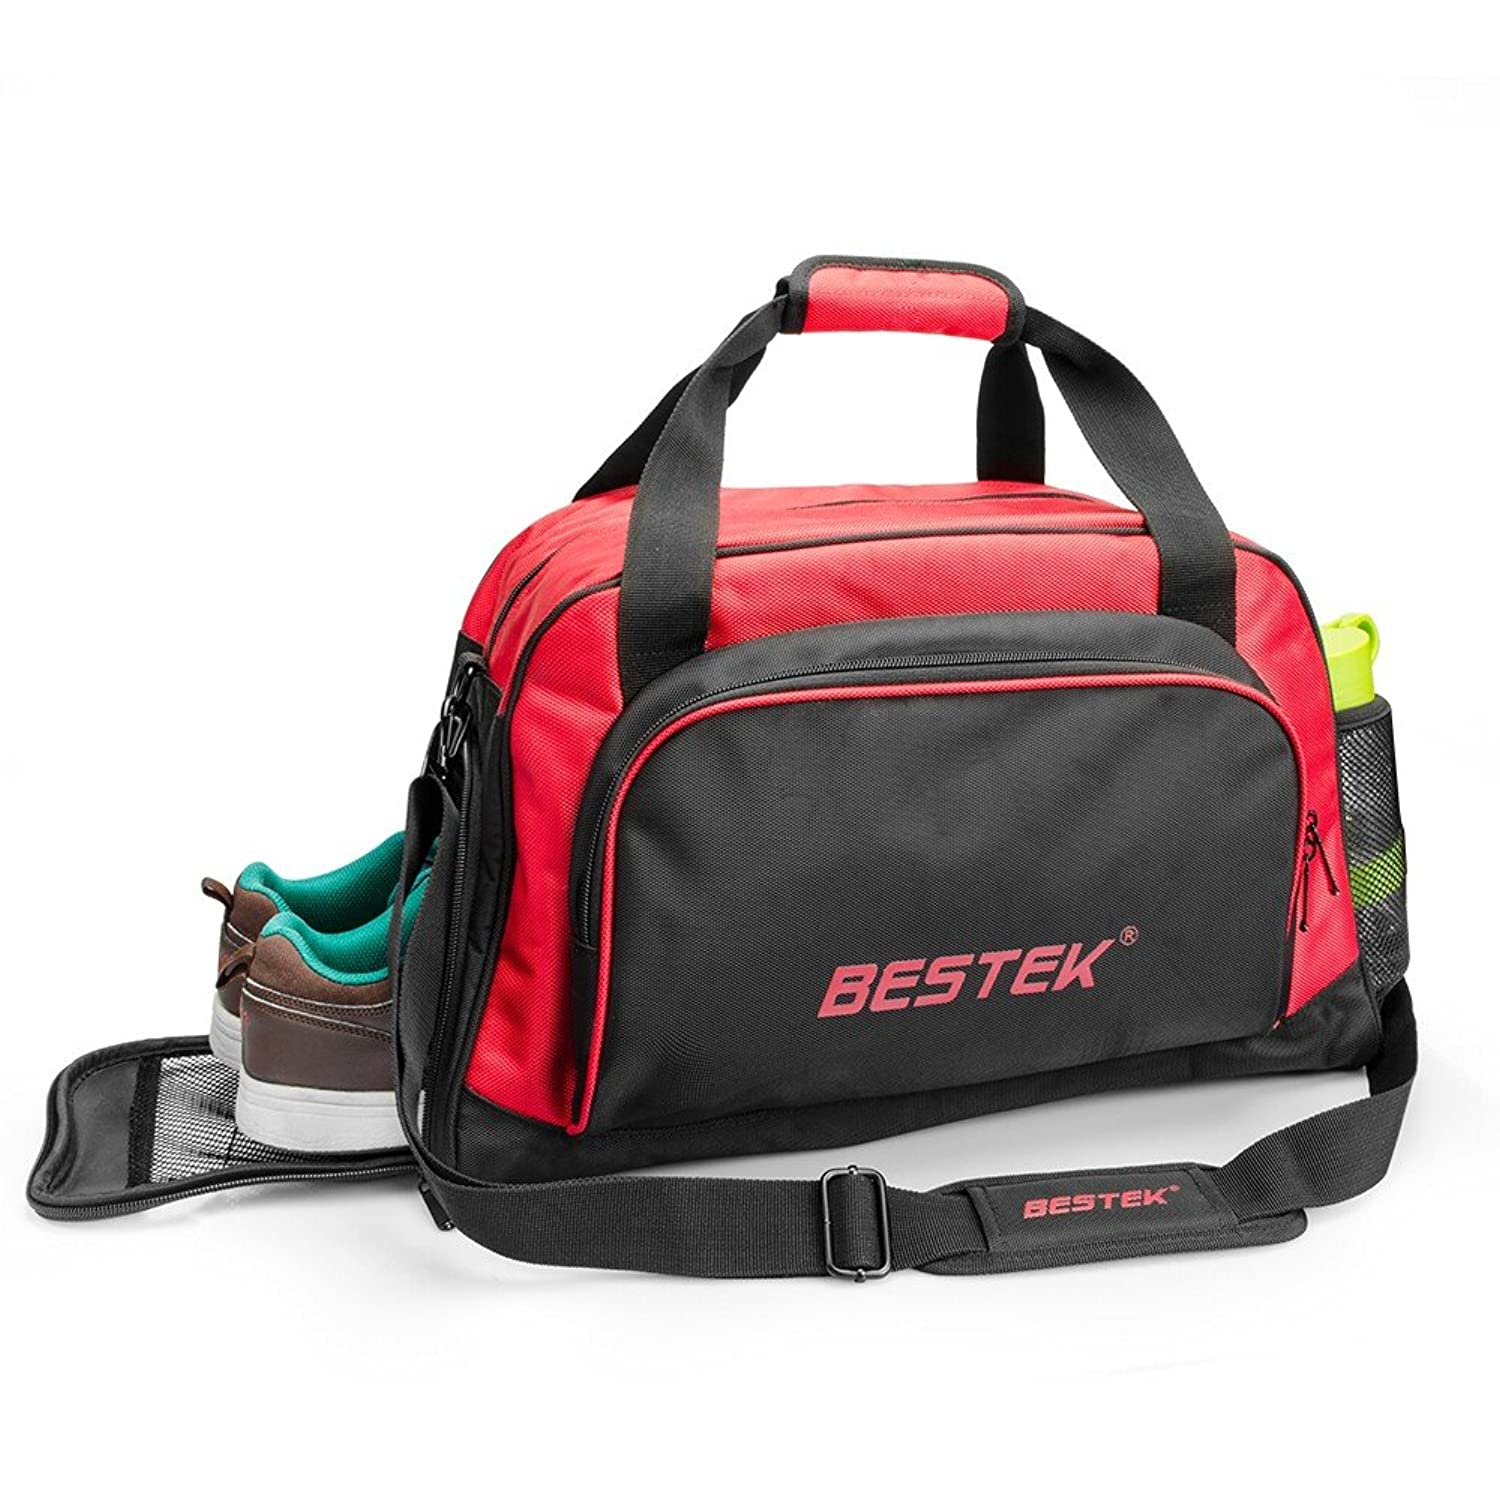 Amazon.com: BESTEK Sport Gear Equipment Gym Duffle Bag Travel ...